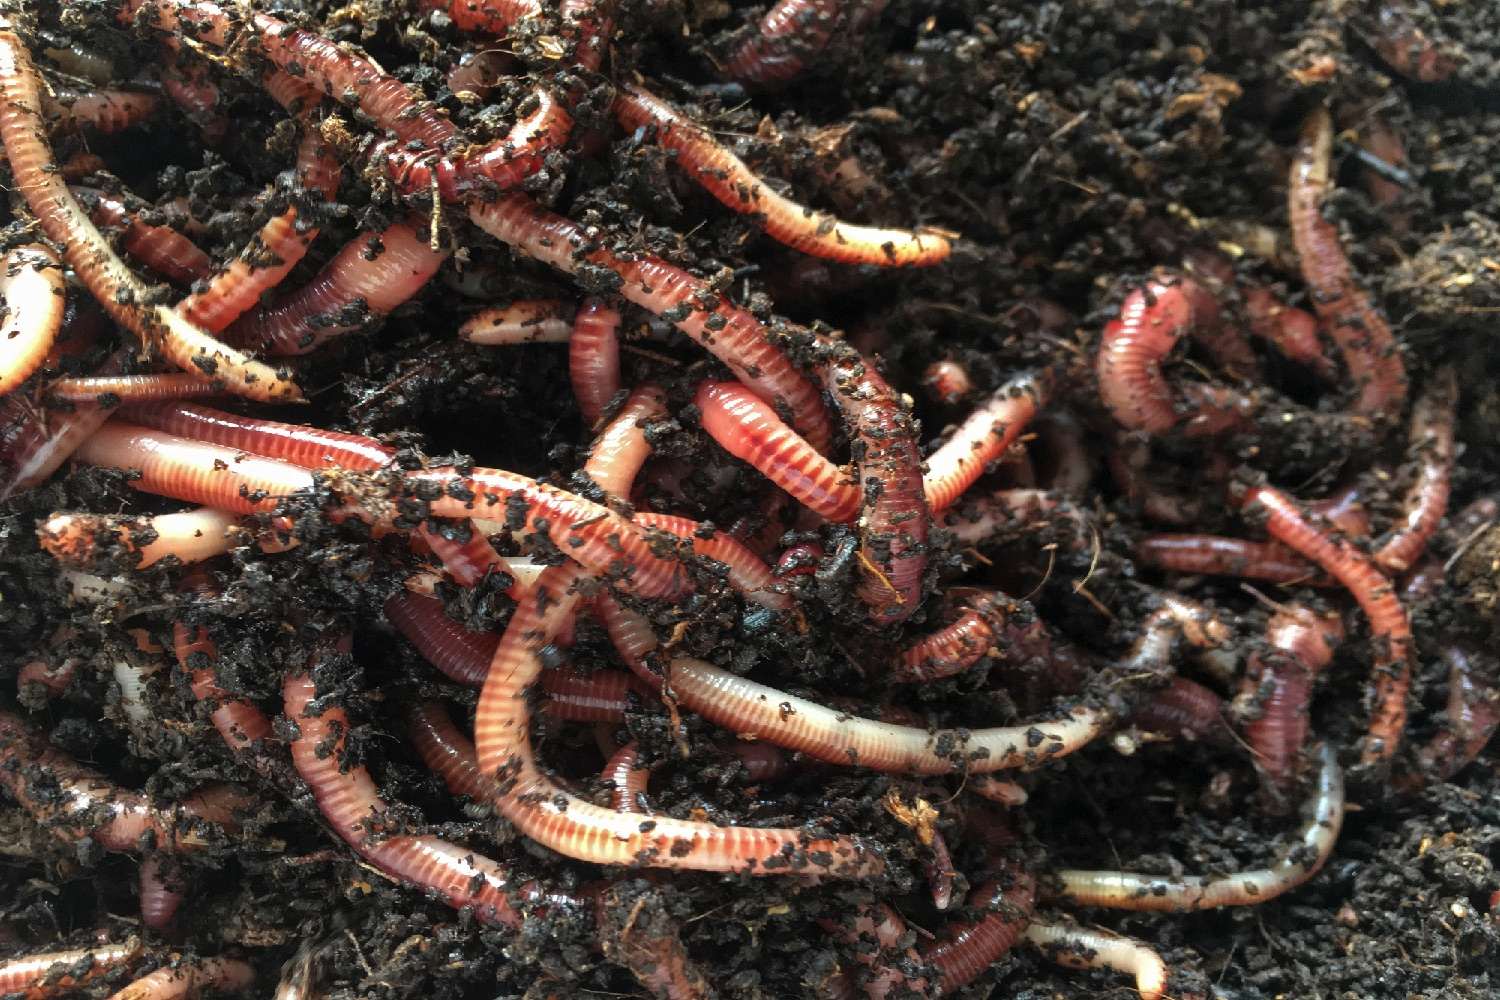 How Does A Worm Eat Food